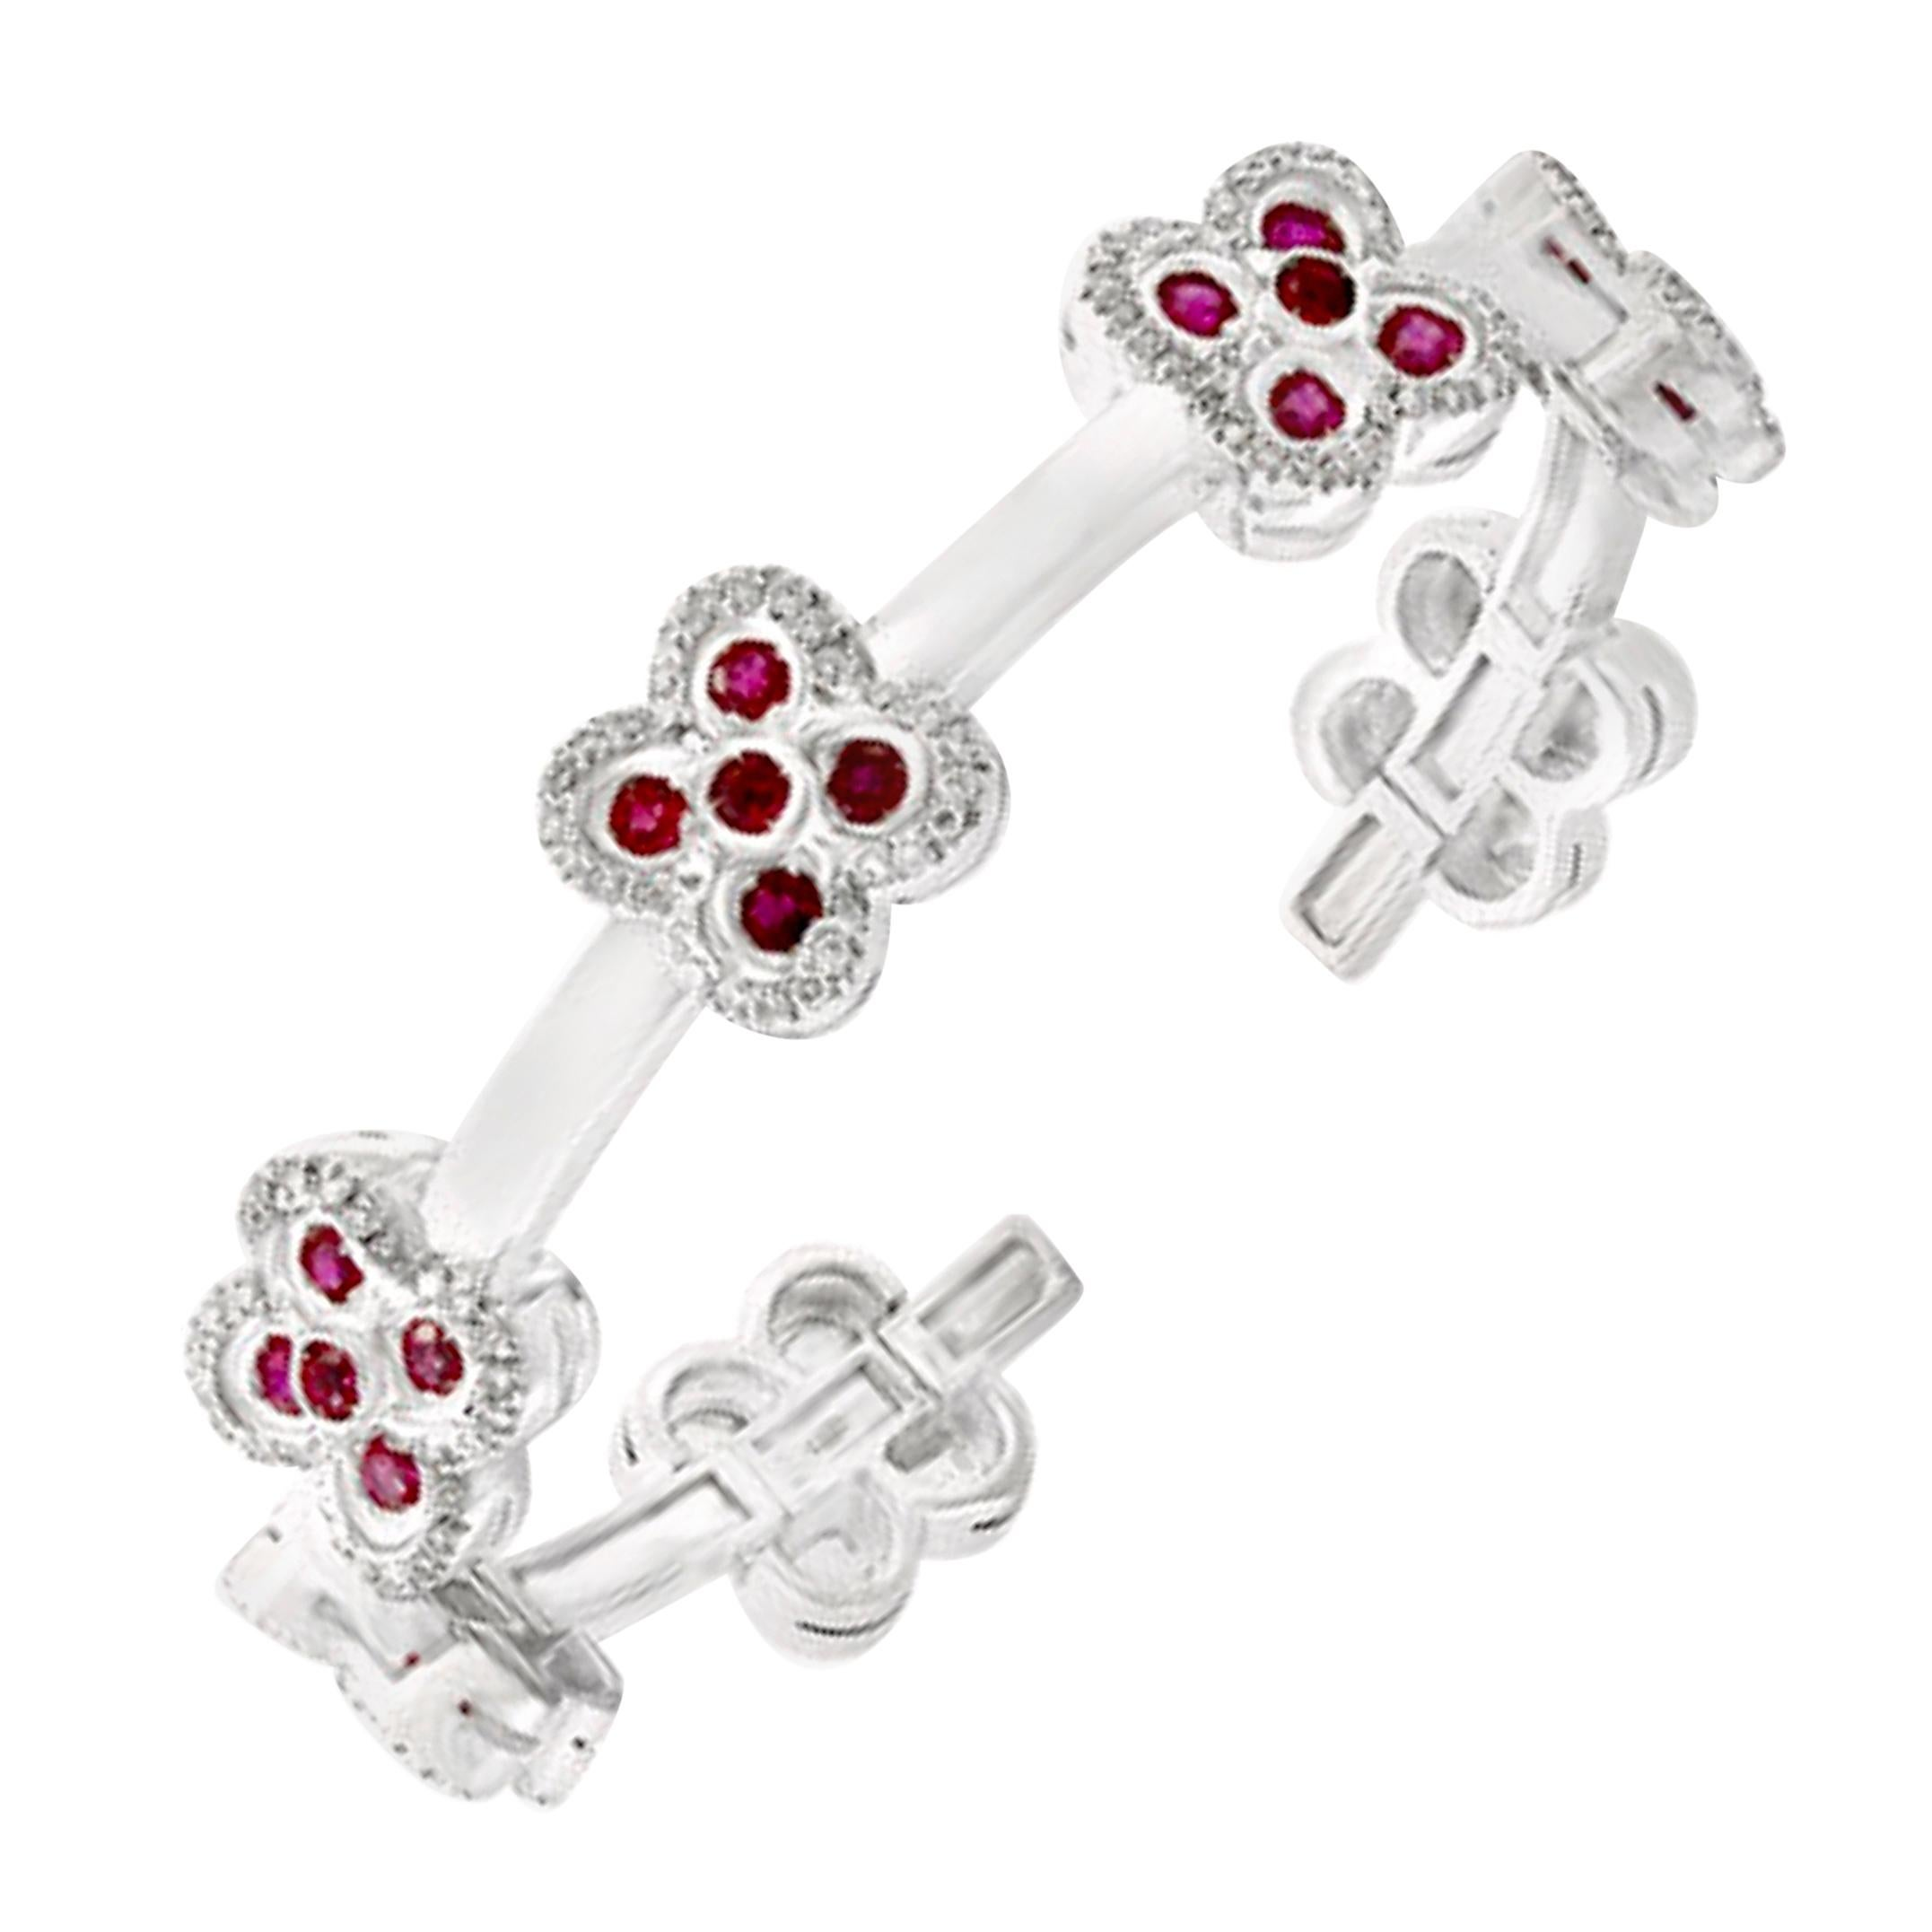 Ruby and Diamond and Gold 37 Grams Cuff Bangle /Bracelet in 18 Karat White Gold